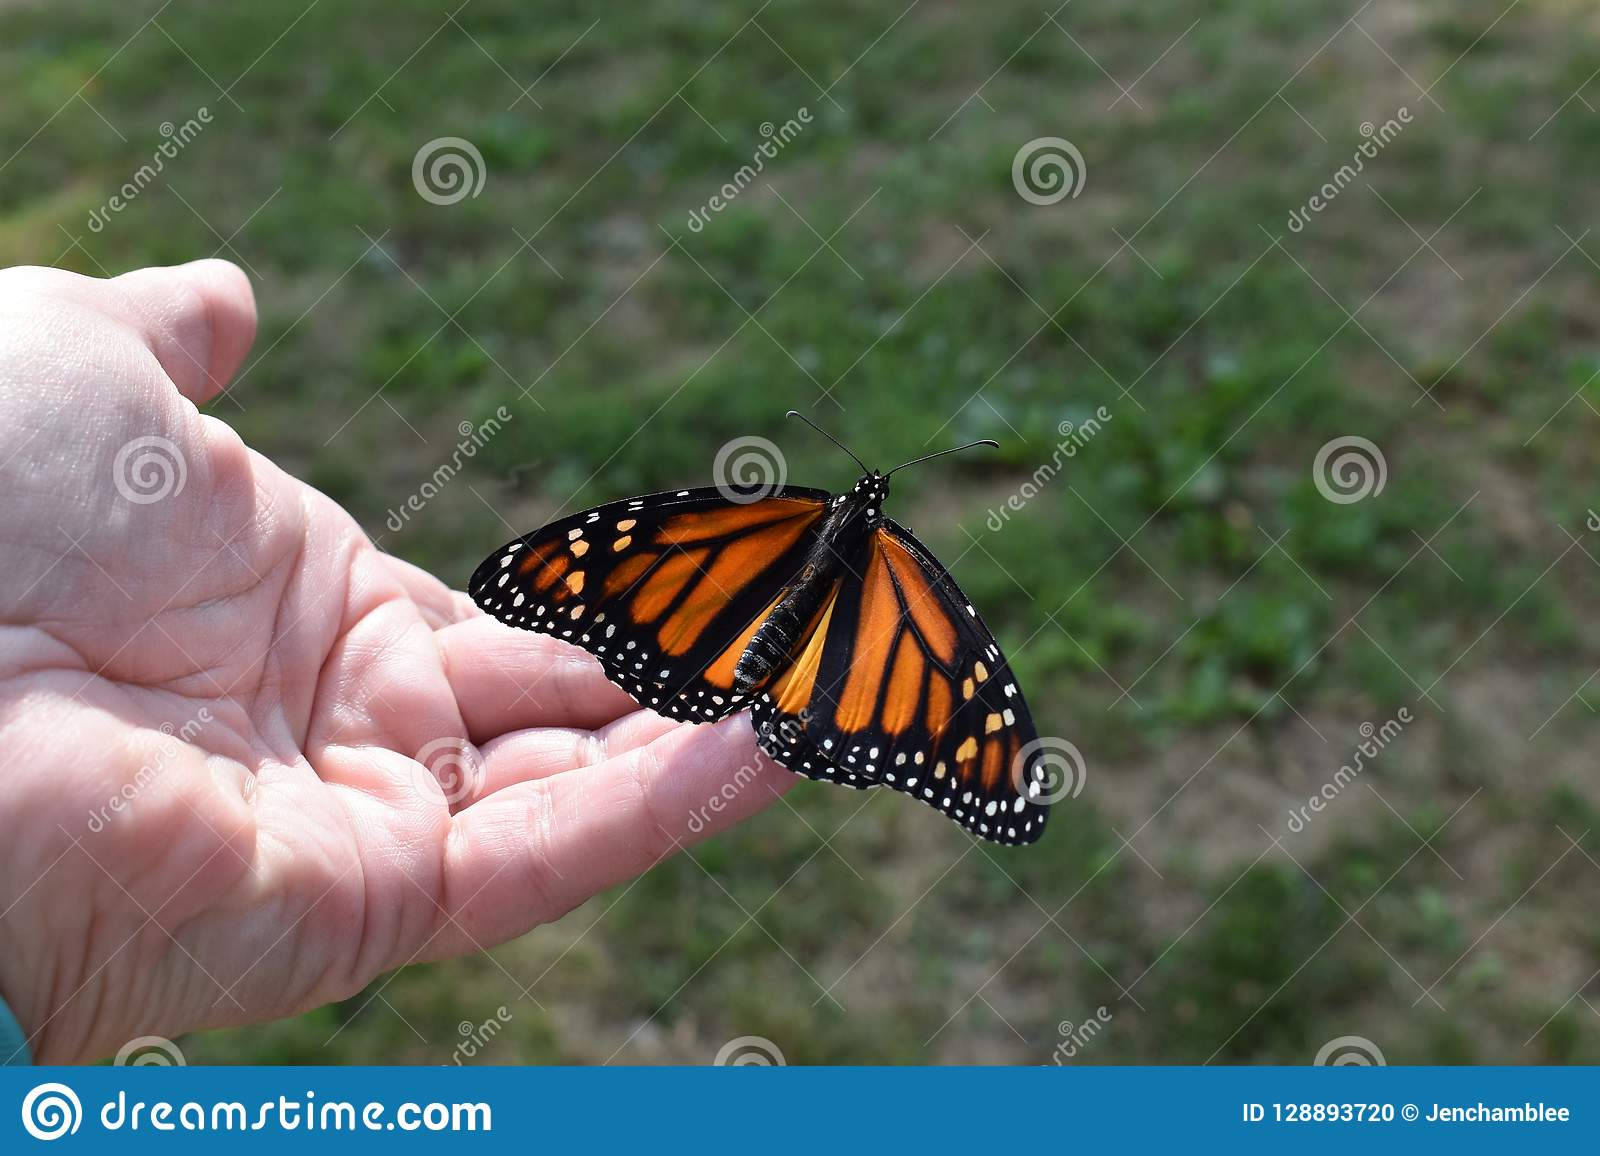 Releasing a newly hatched monarch butterfly